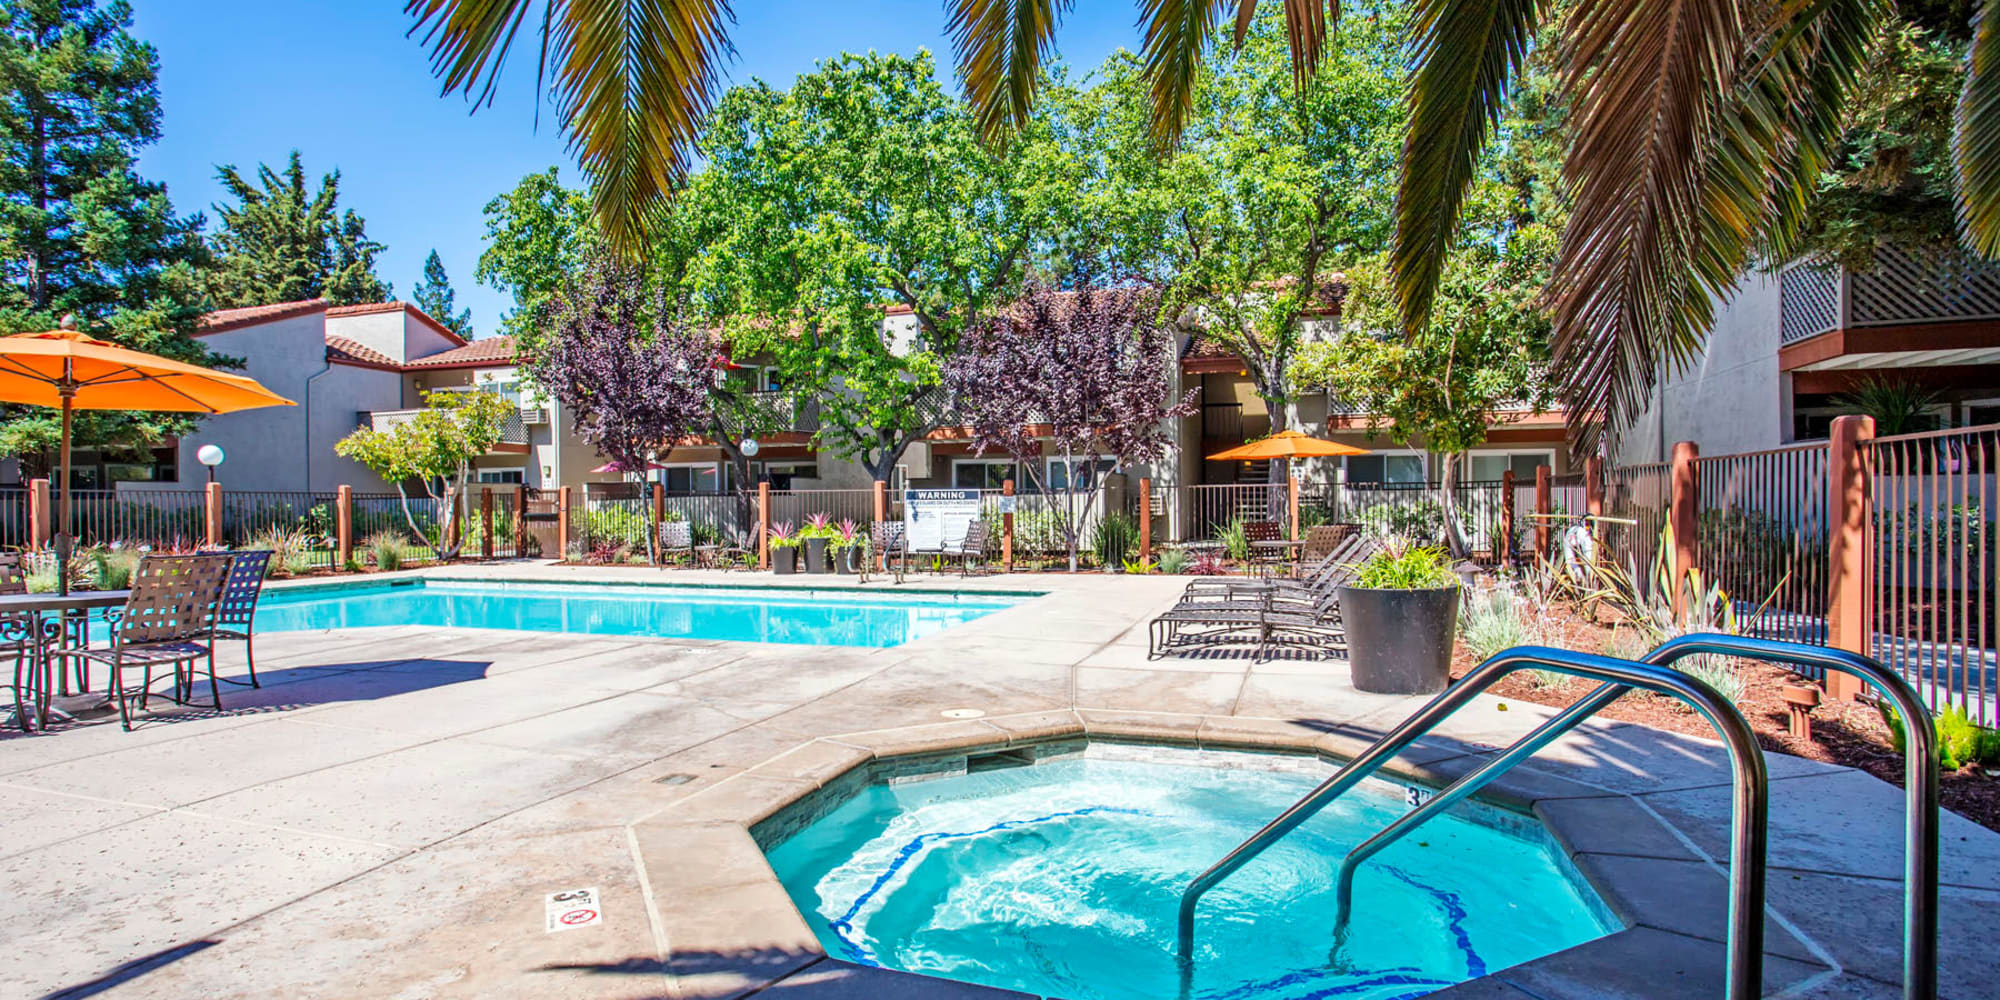 Spa and swimming pool area on a beautiful day at Valley Plaza Villages in Pleasanton, California